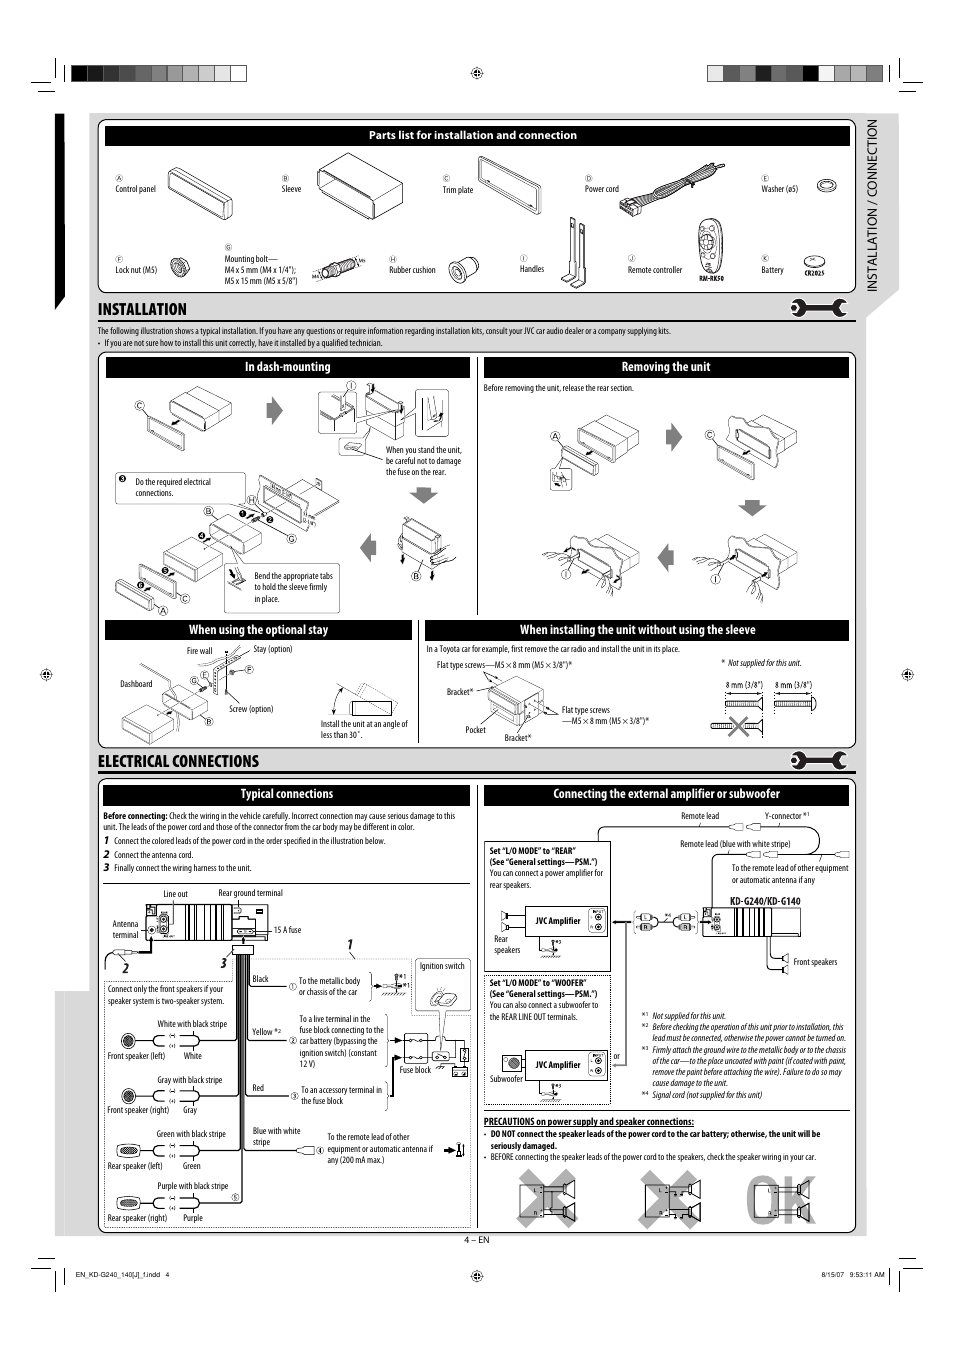 Car Stereo Jvc Kd S39 Wiring Diagram Schematic Diagrams S37 G140 Owners Manual Browse Guides U2022